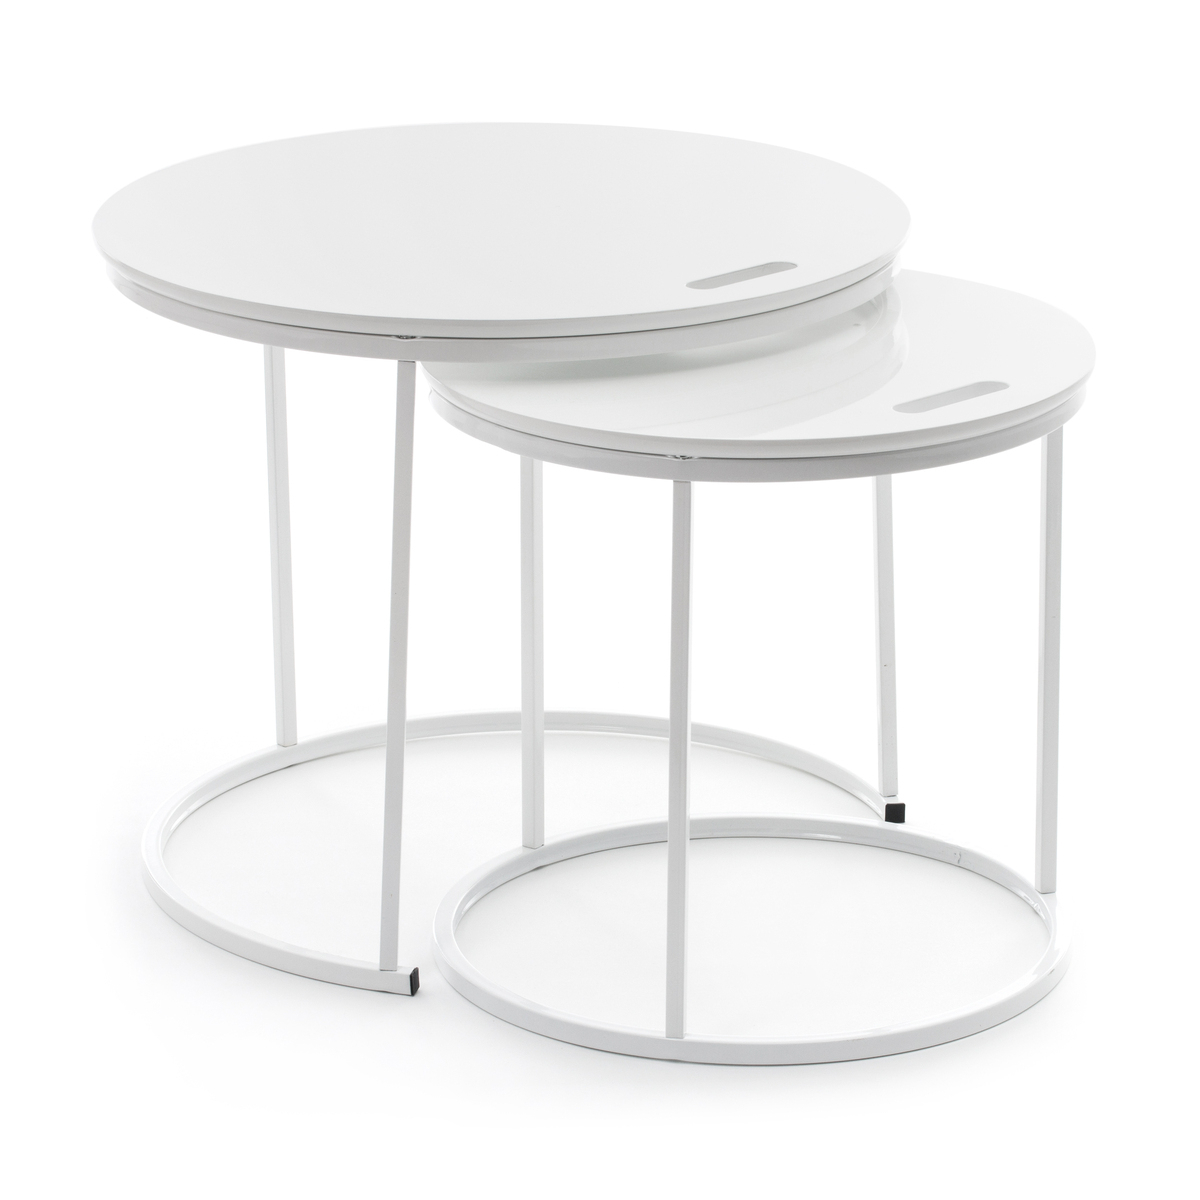 Design Table Set Table Sets Modern Coffee Table Coffee Table White Ebay